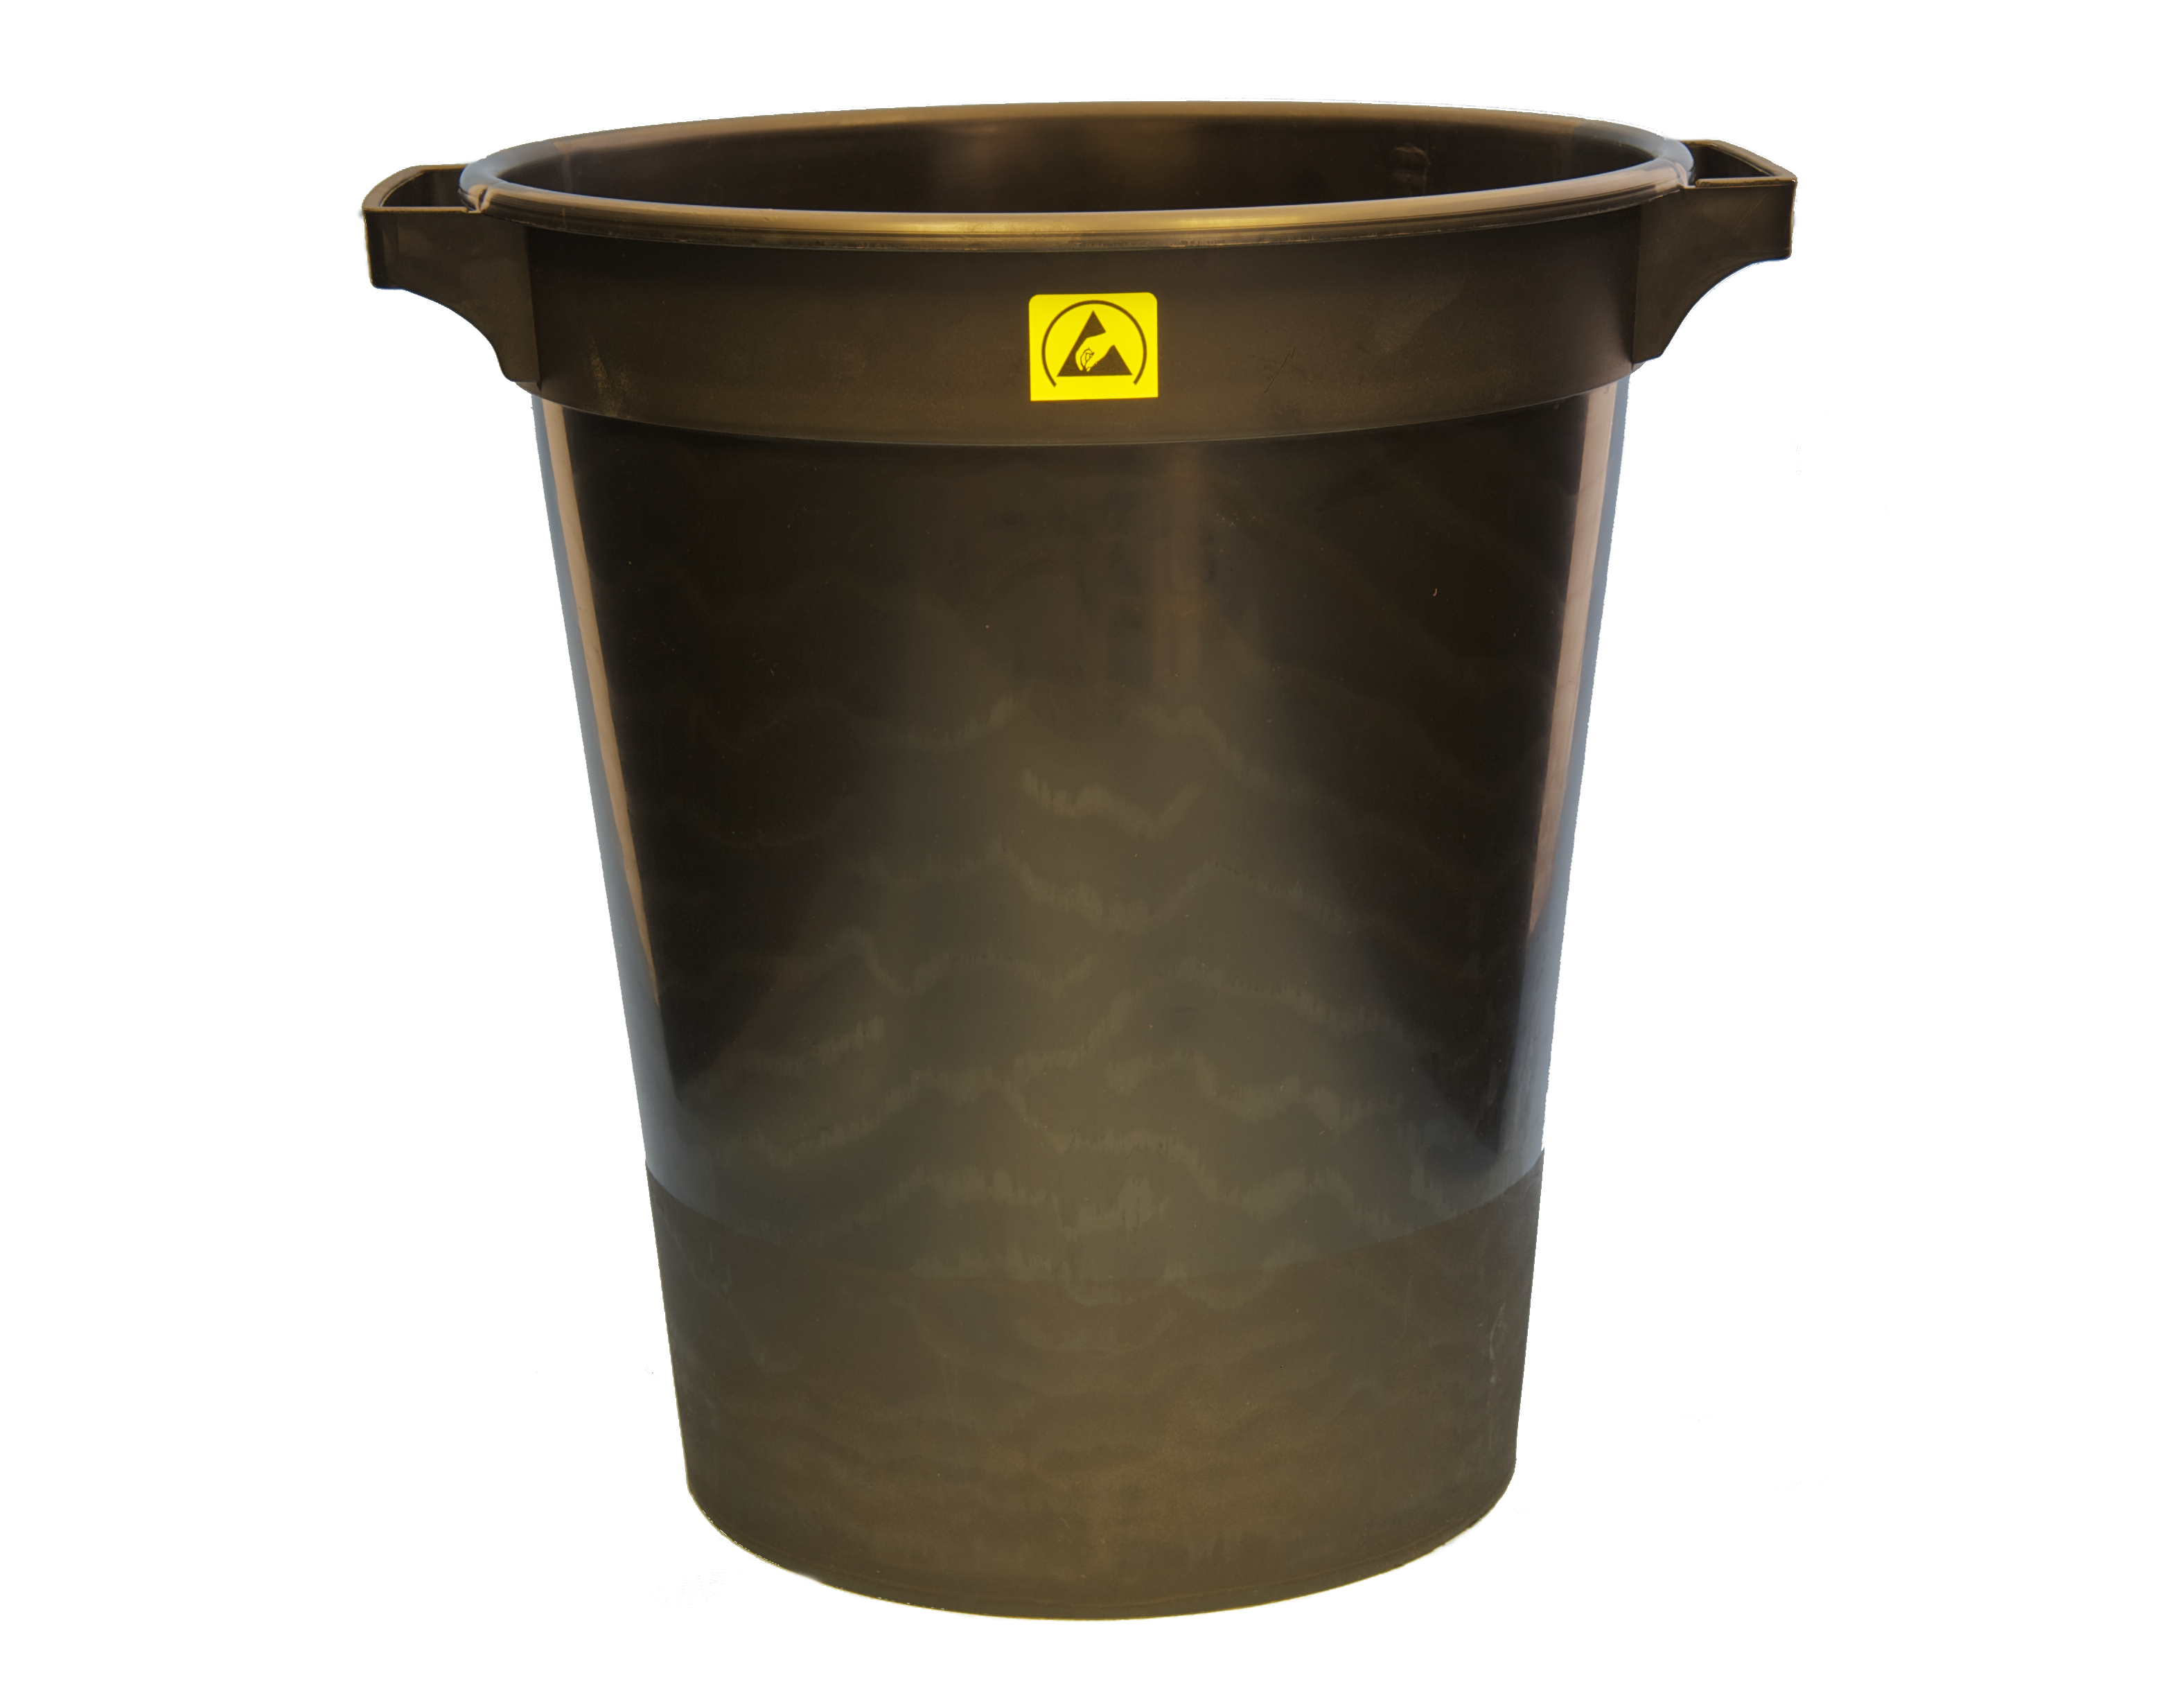 Conductive Waste Bins and liners